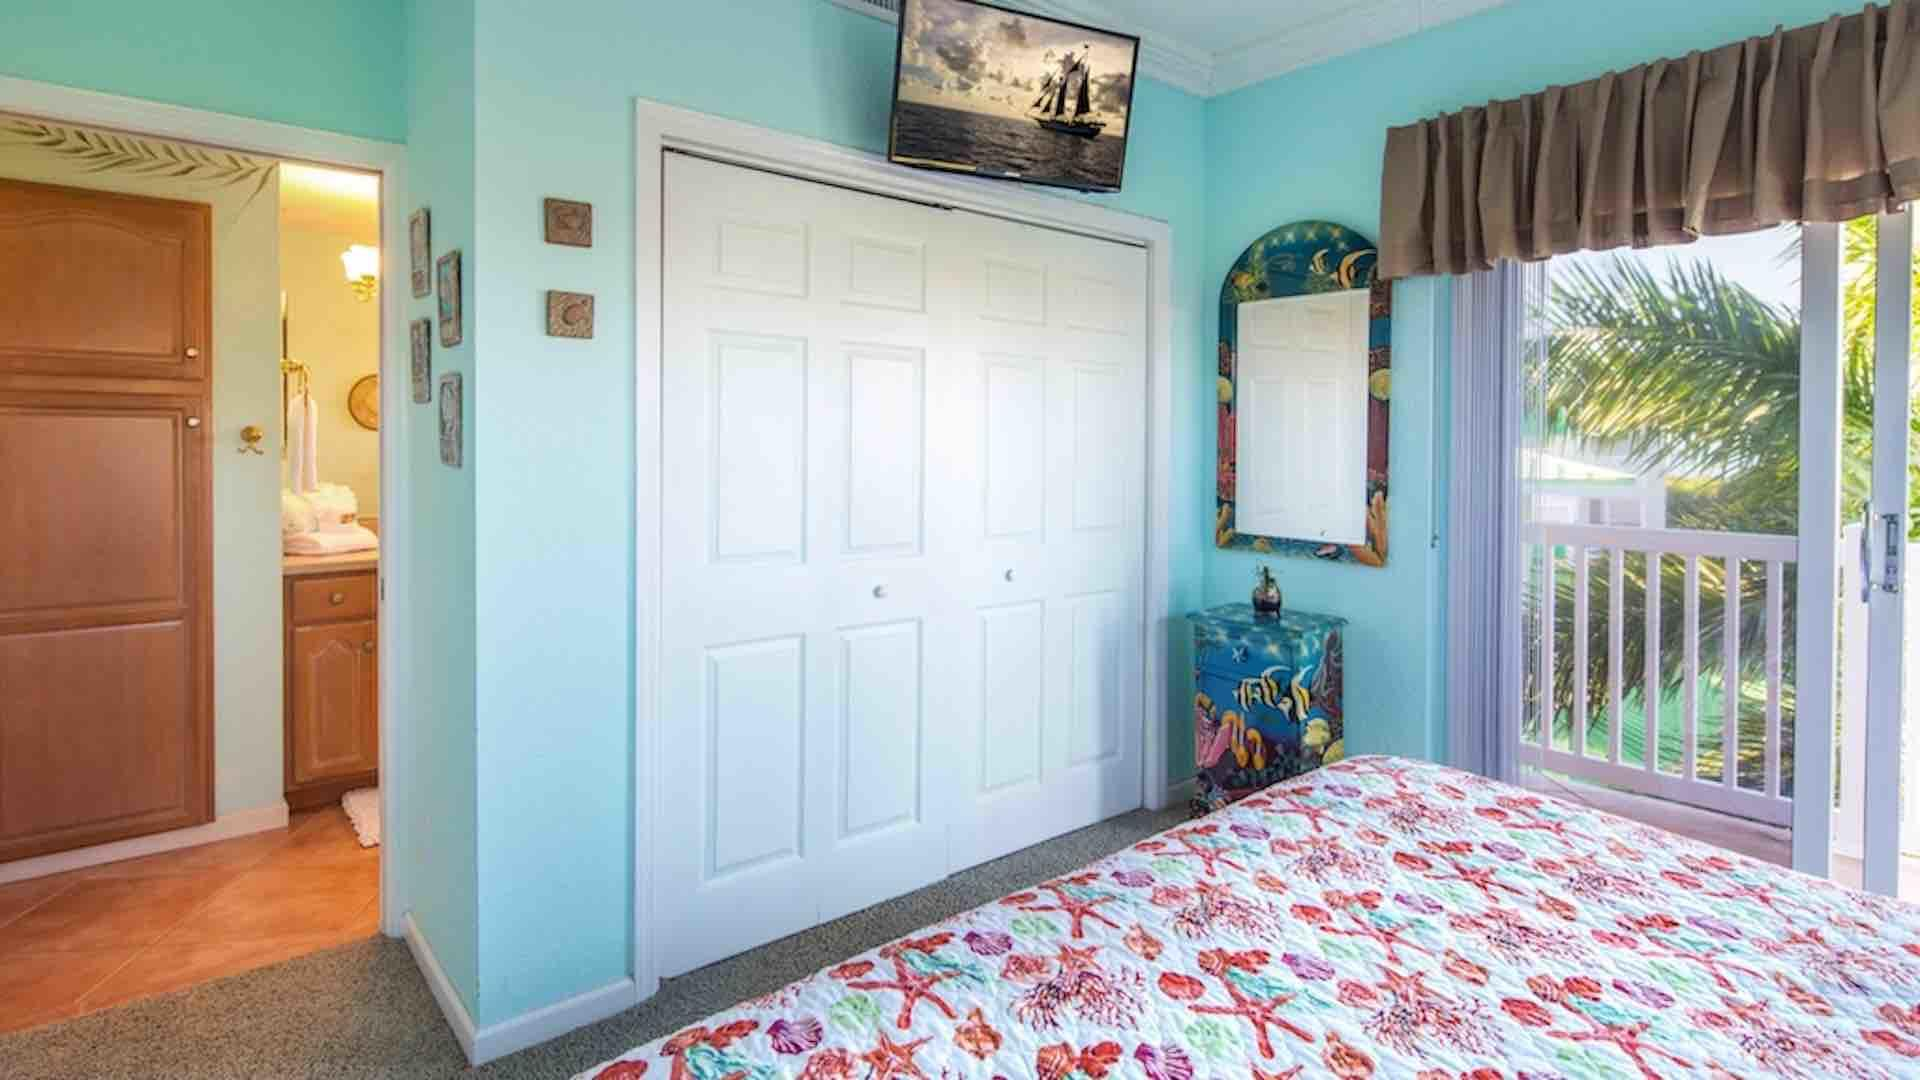 The second bedroom also has a flat screen TV and large closet...